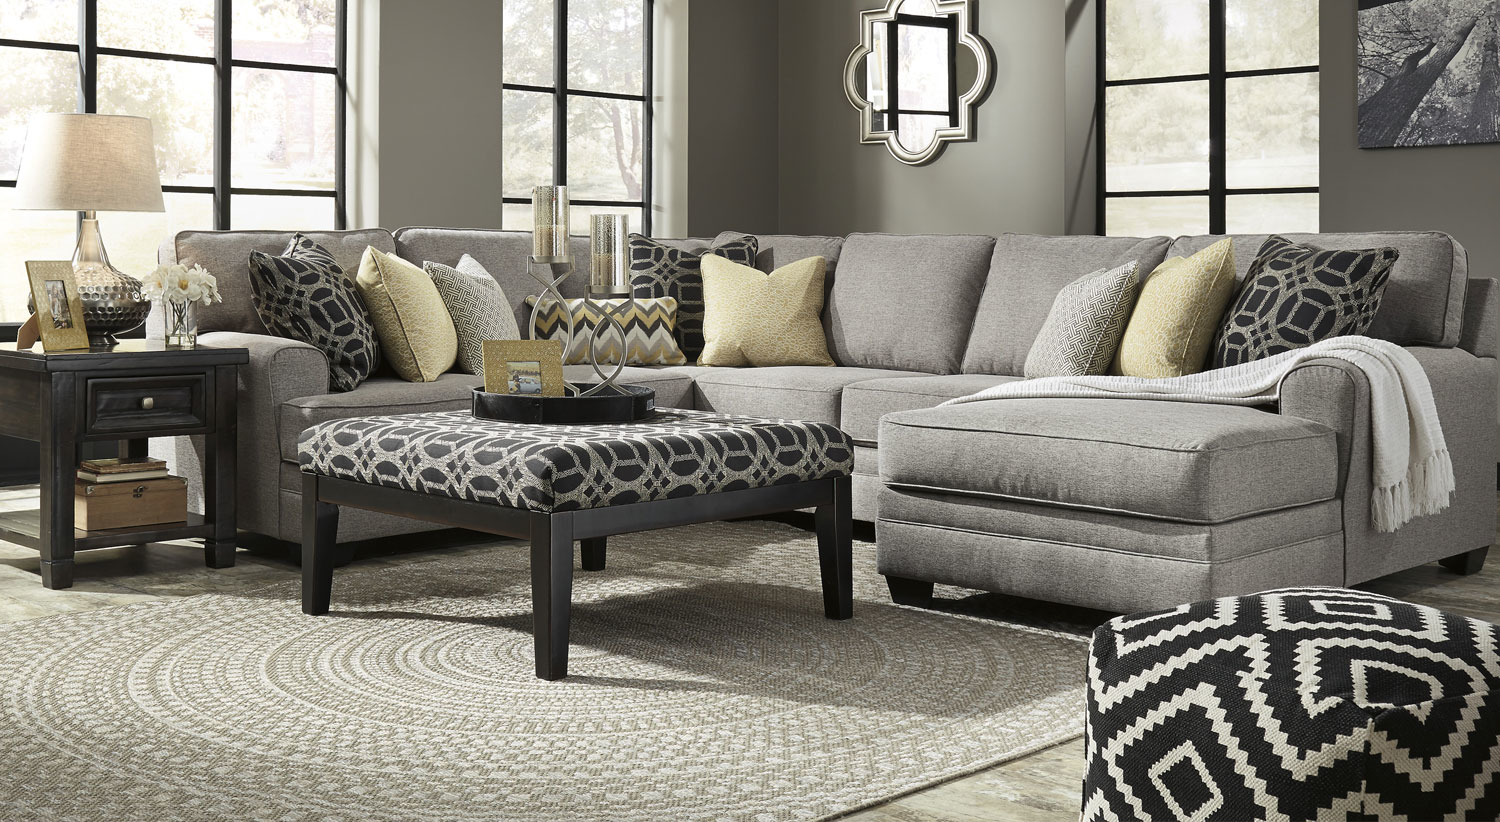 Top Furniture Store in Calgary  Ashley Furniture for less